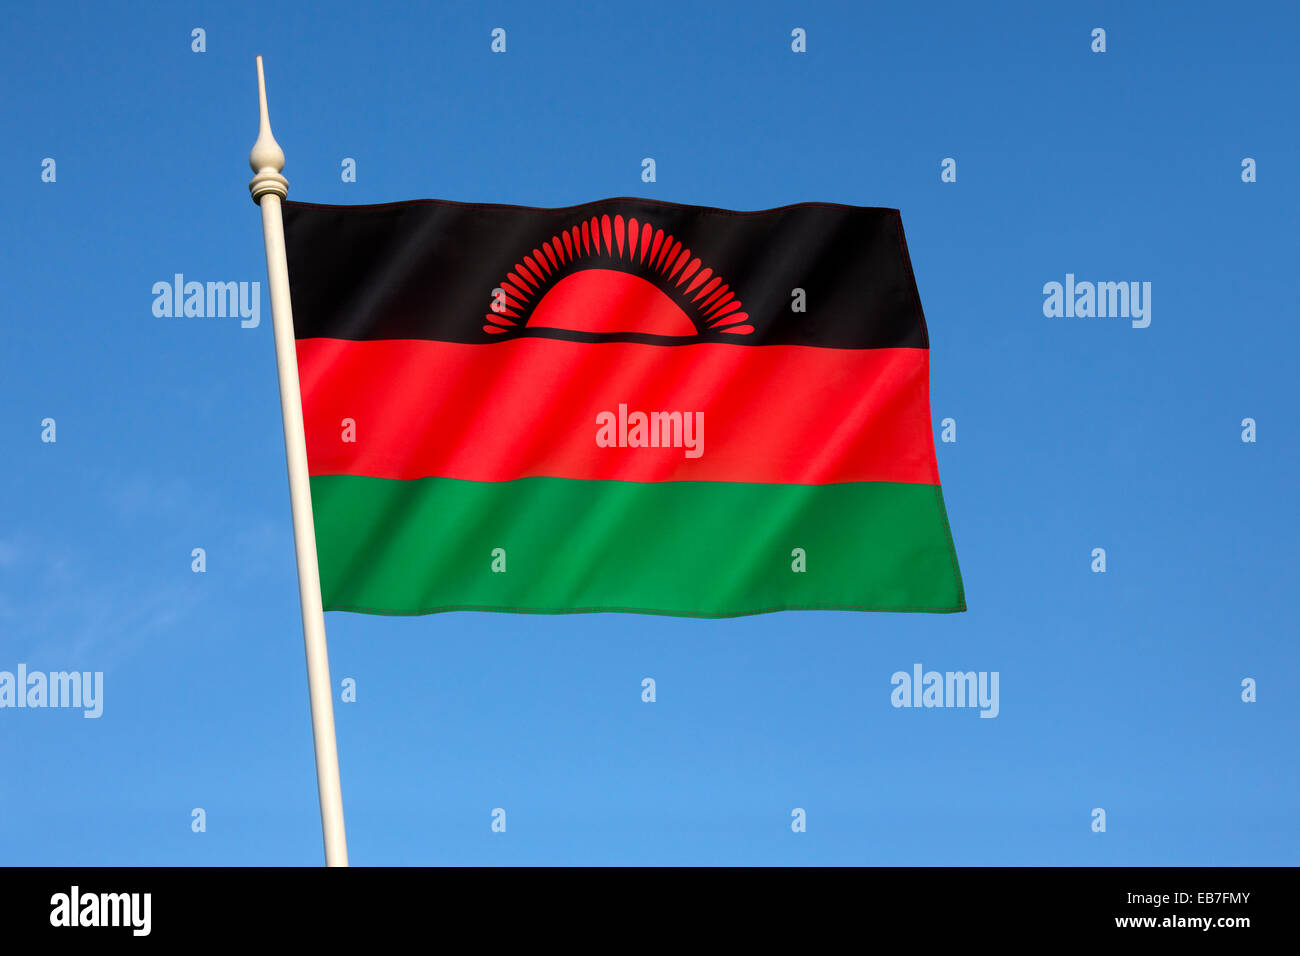 Flag of Malawi - Stock Image